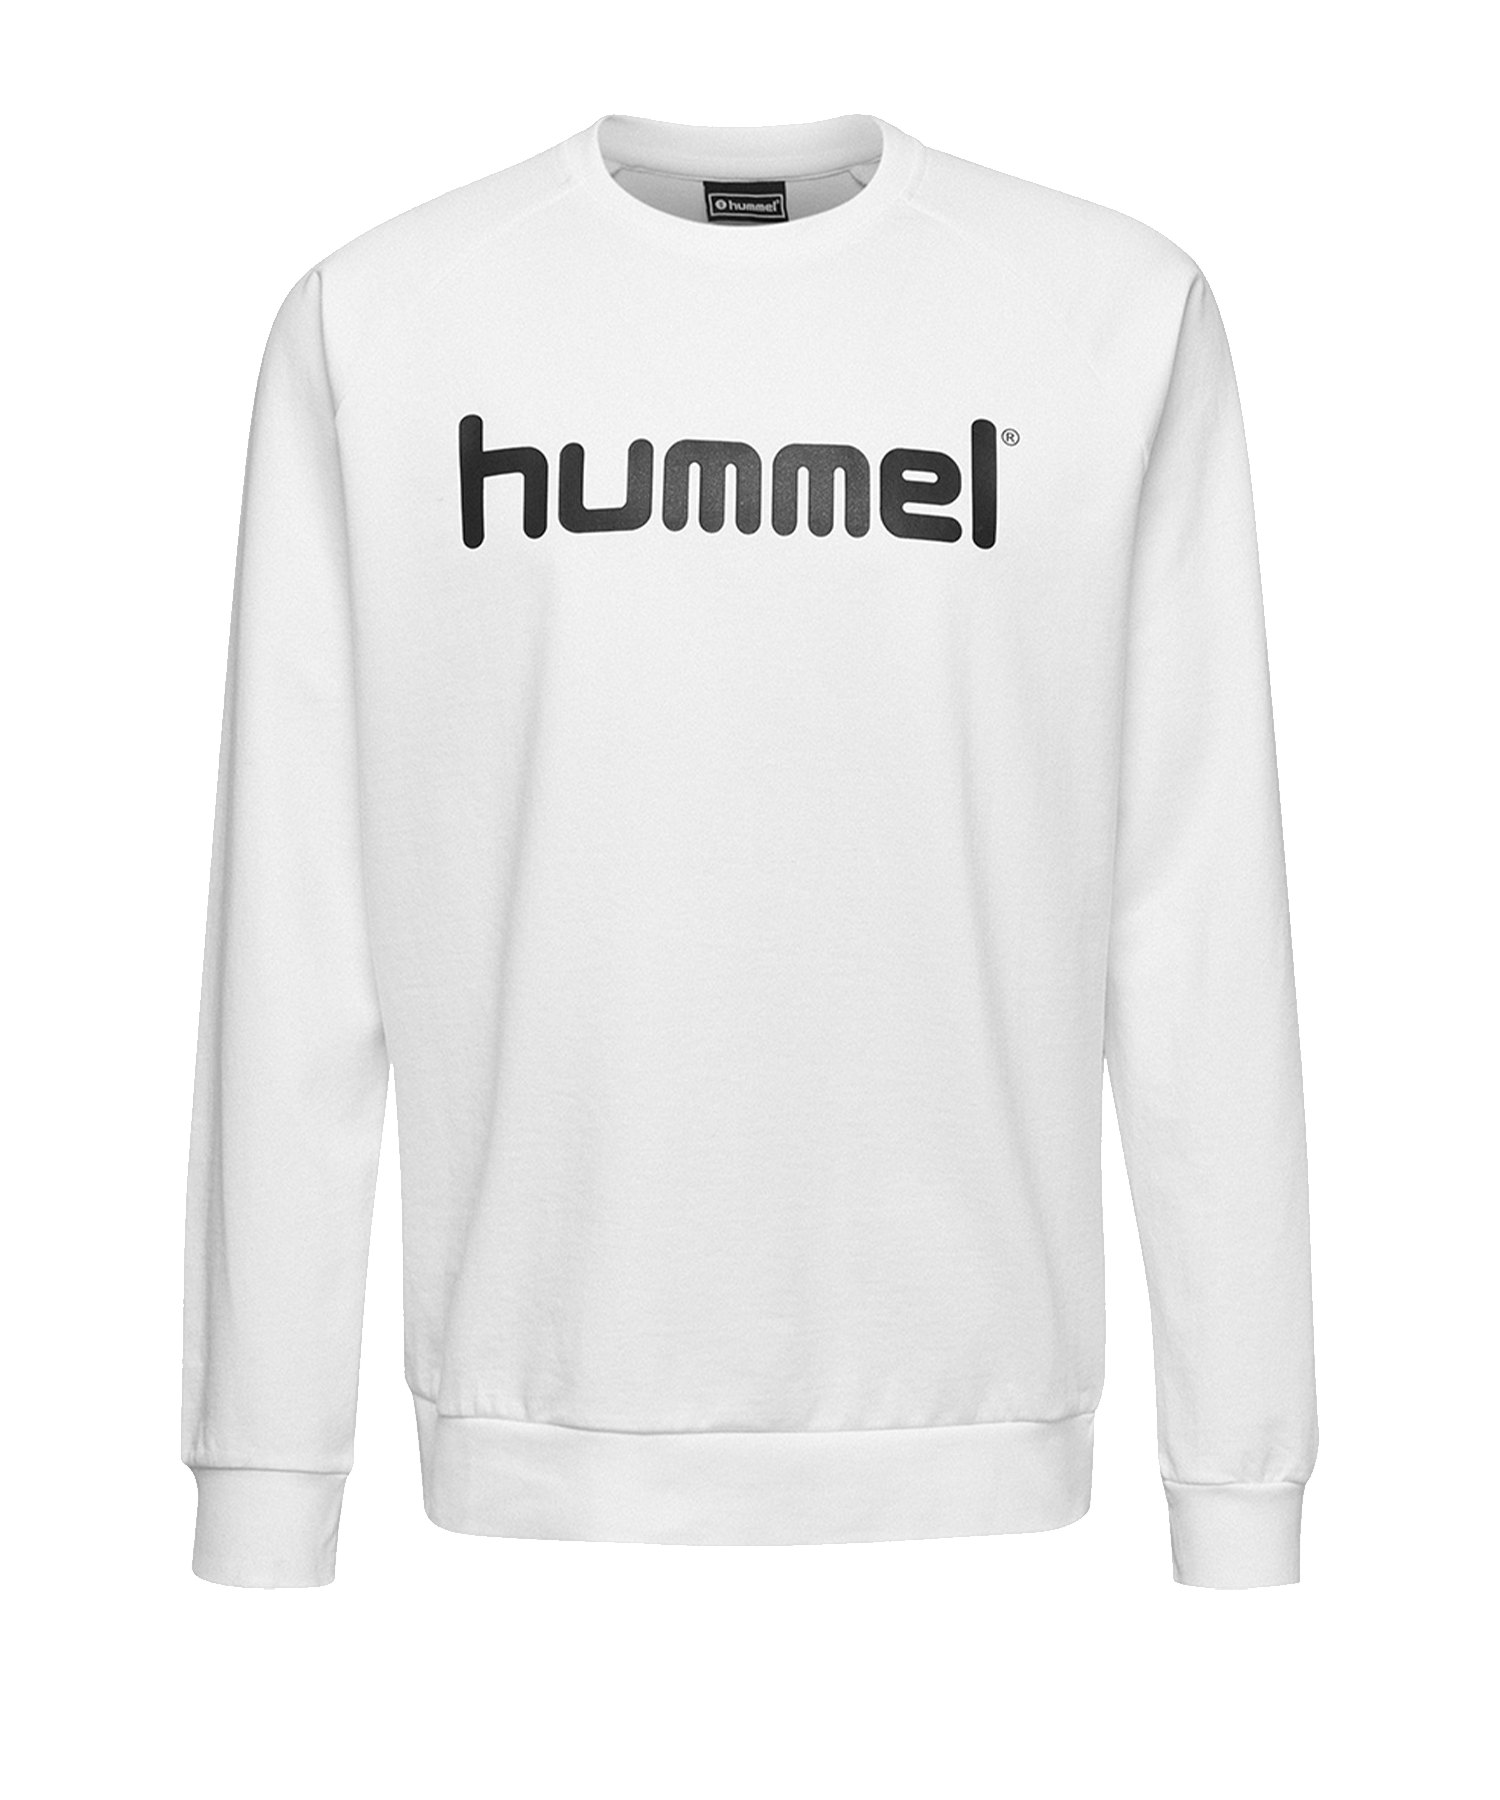 Hummel Cotton Logo Sweatshirt Weiss F9001 - Weiss